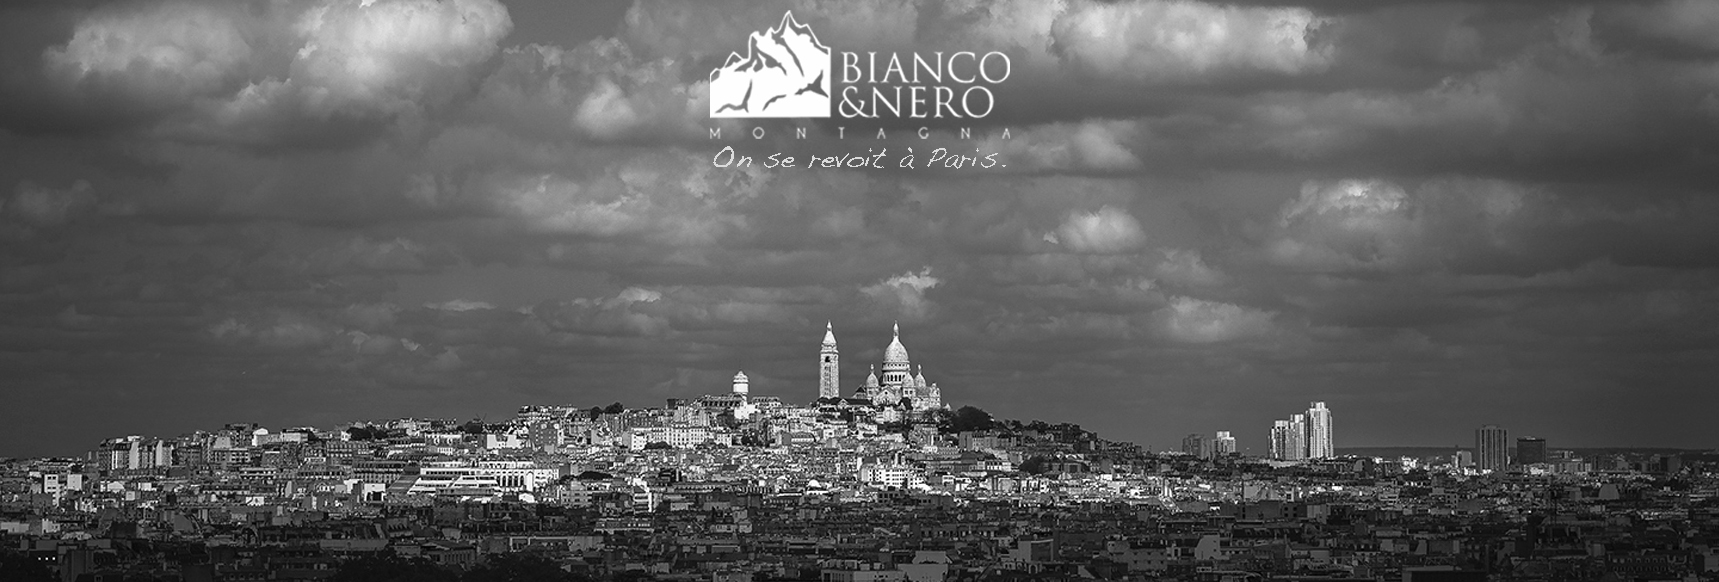 School of Photography | Bianco&Nero Montagna